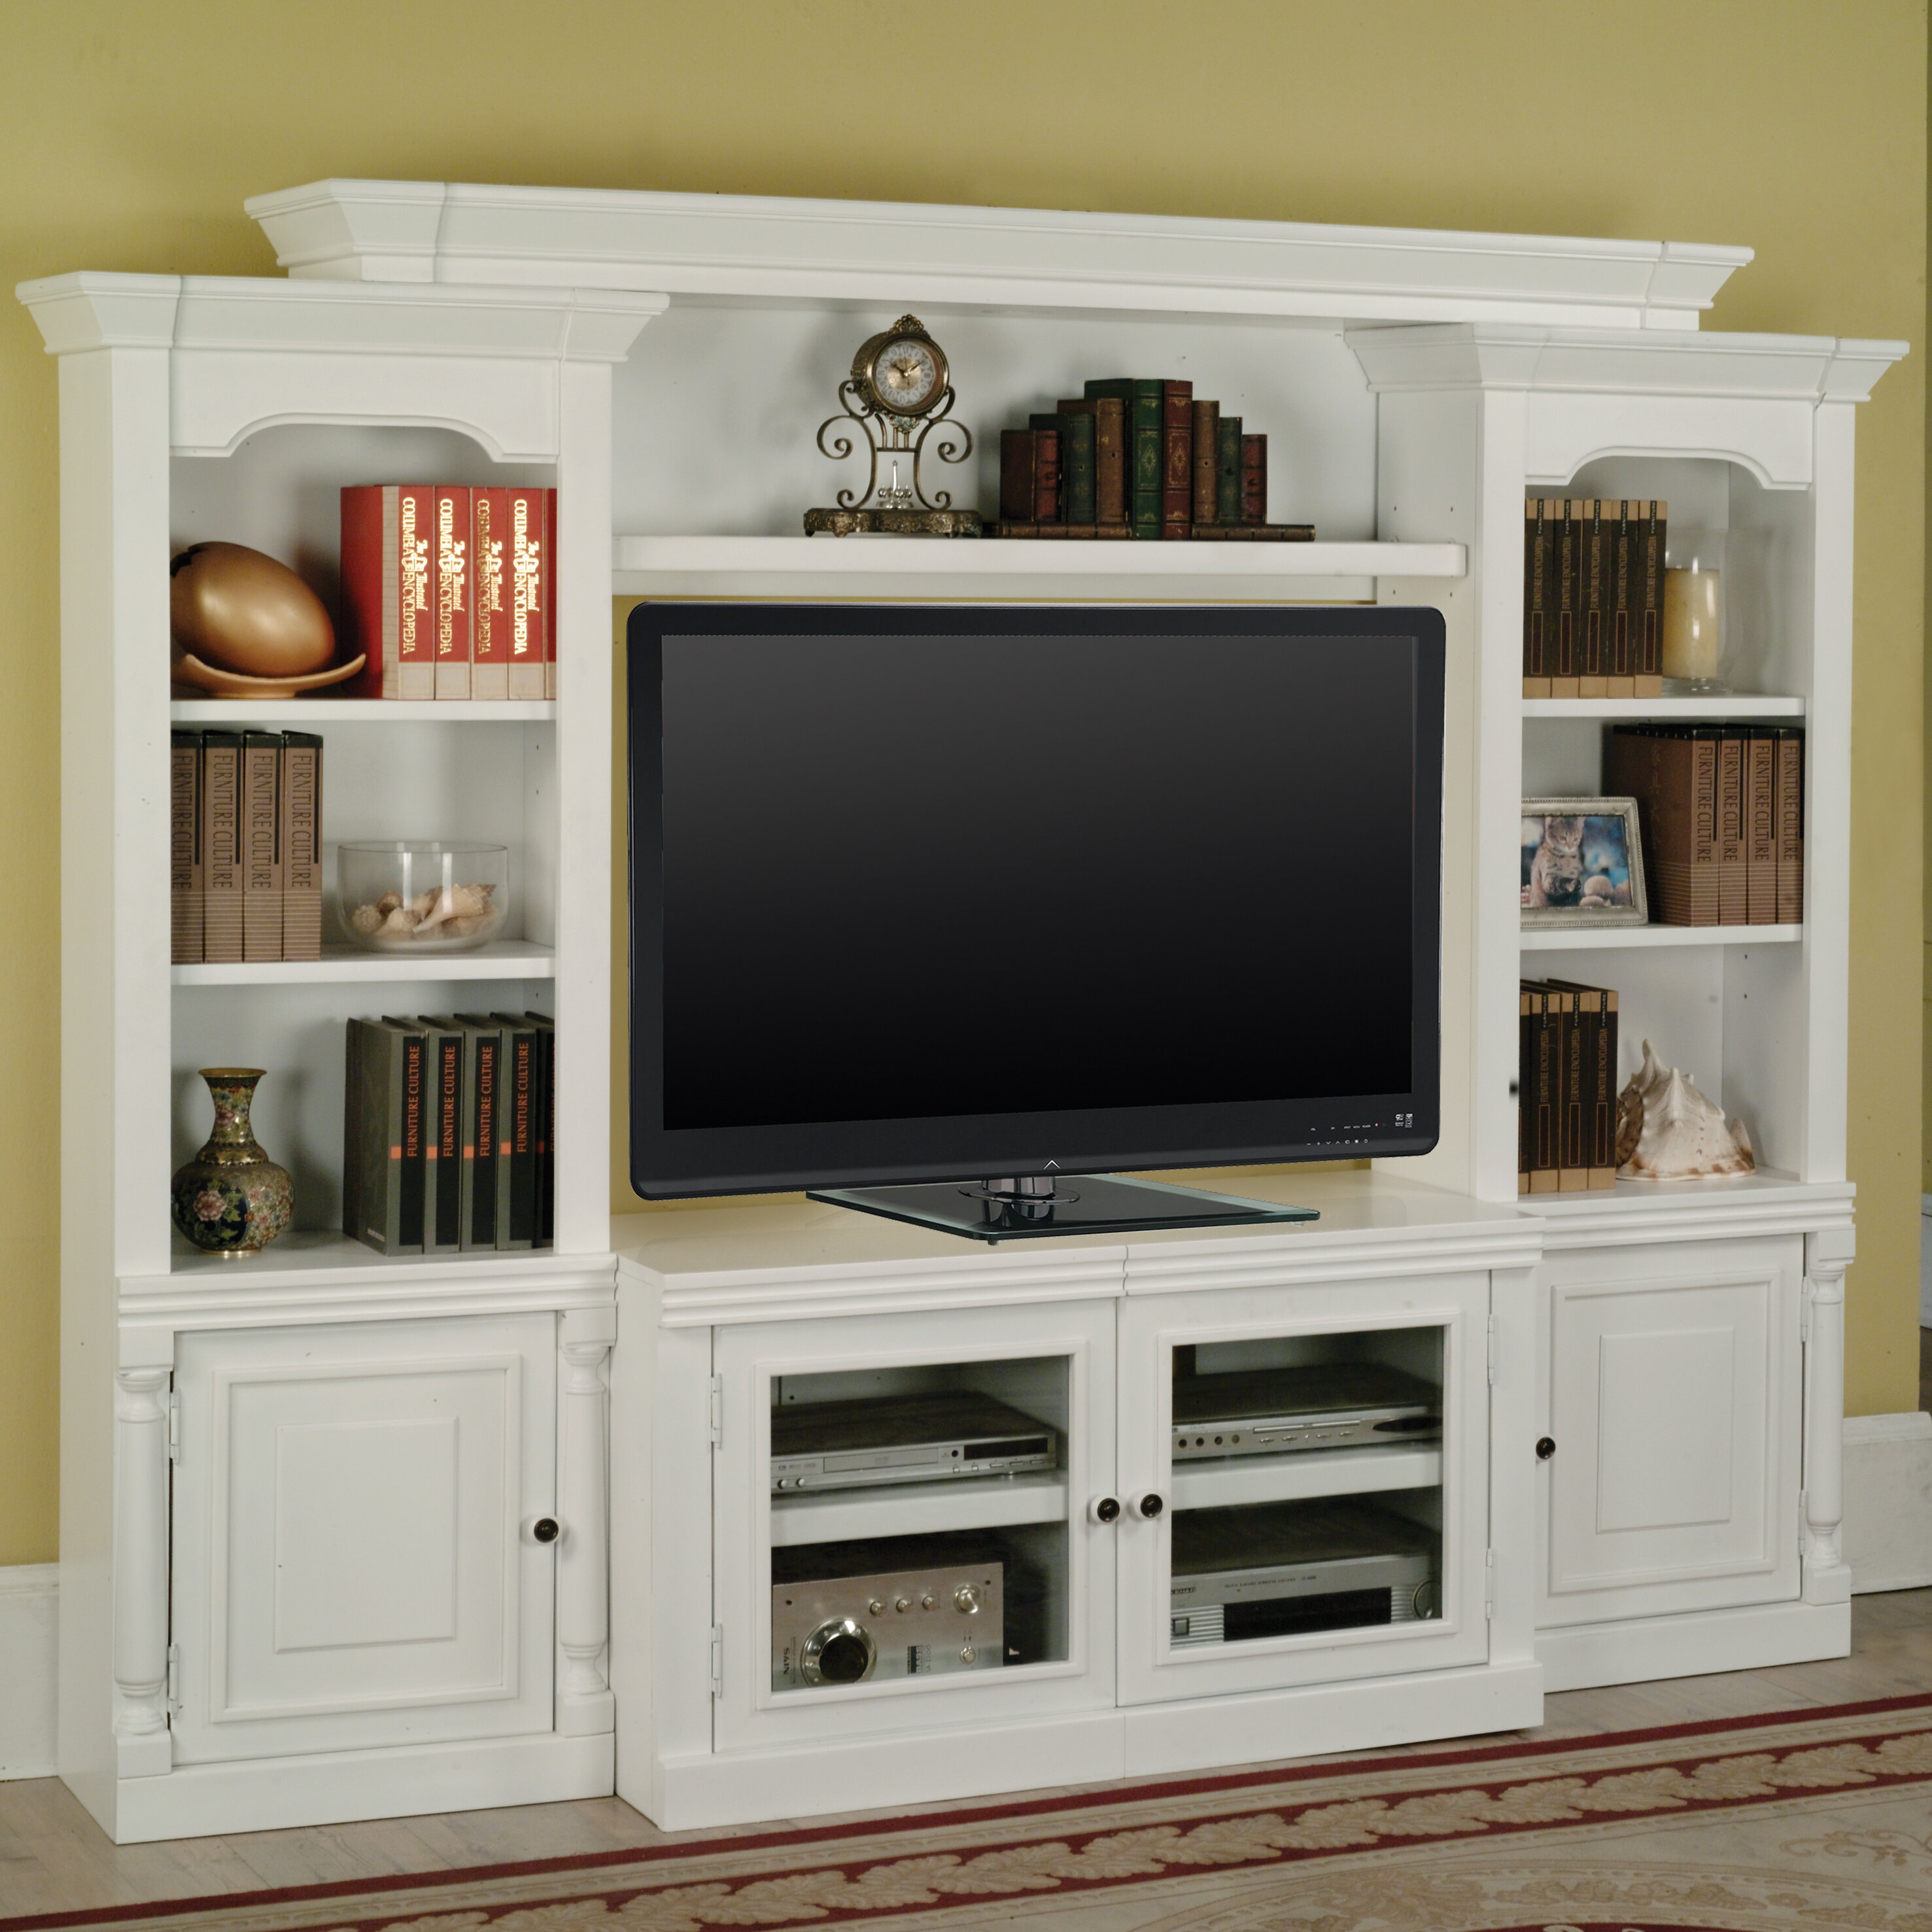 Darby Home Co Centerburg Expandable Entertainment Centre For Tvs Up To 60 Reviews